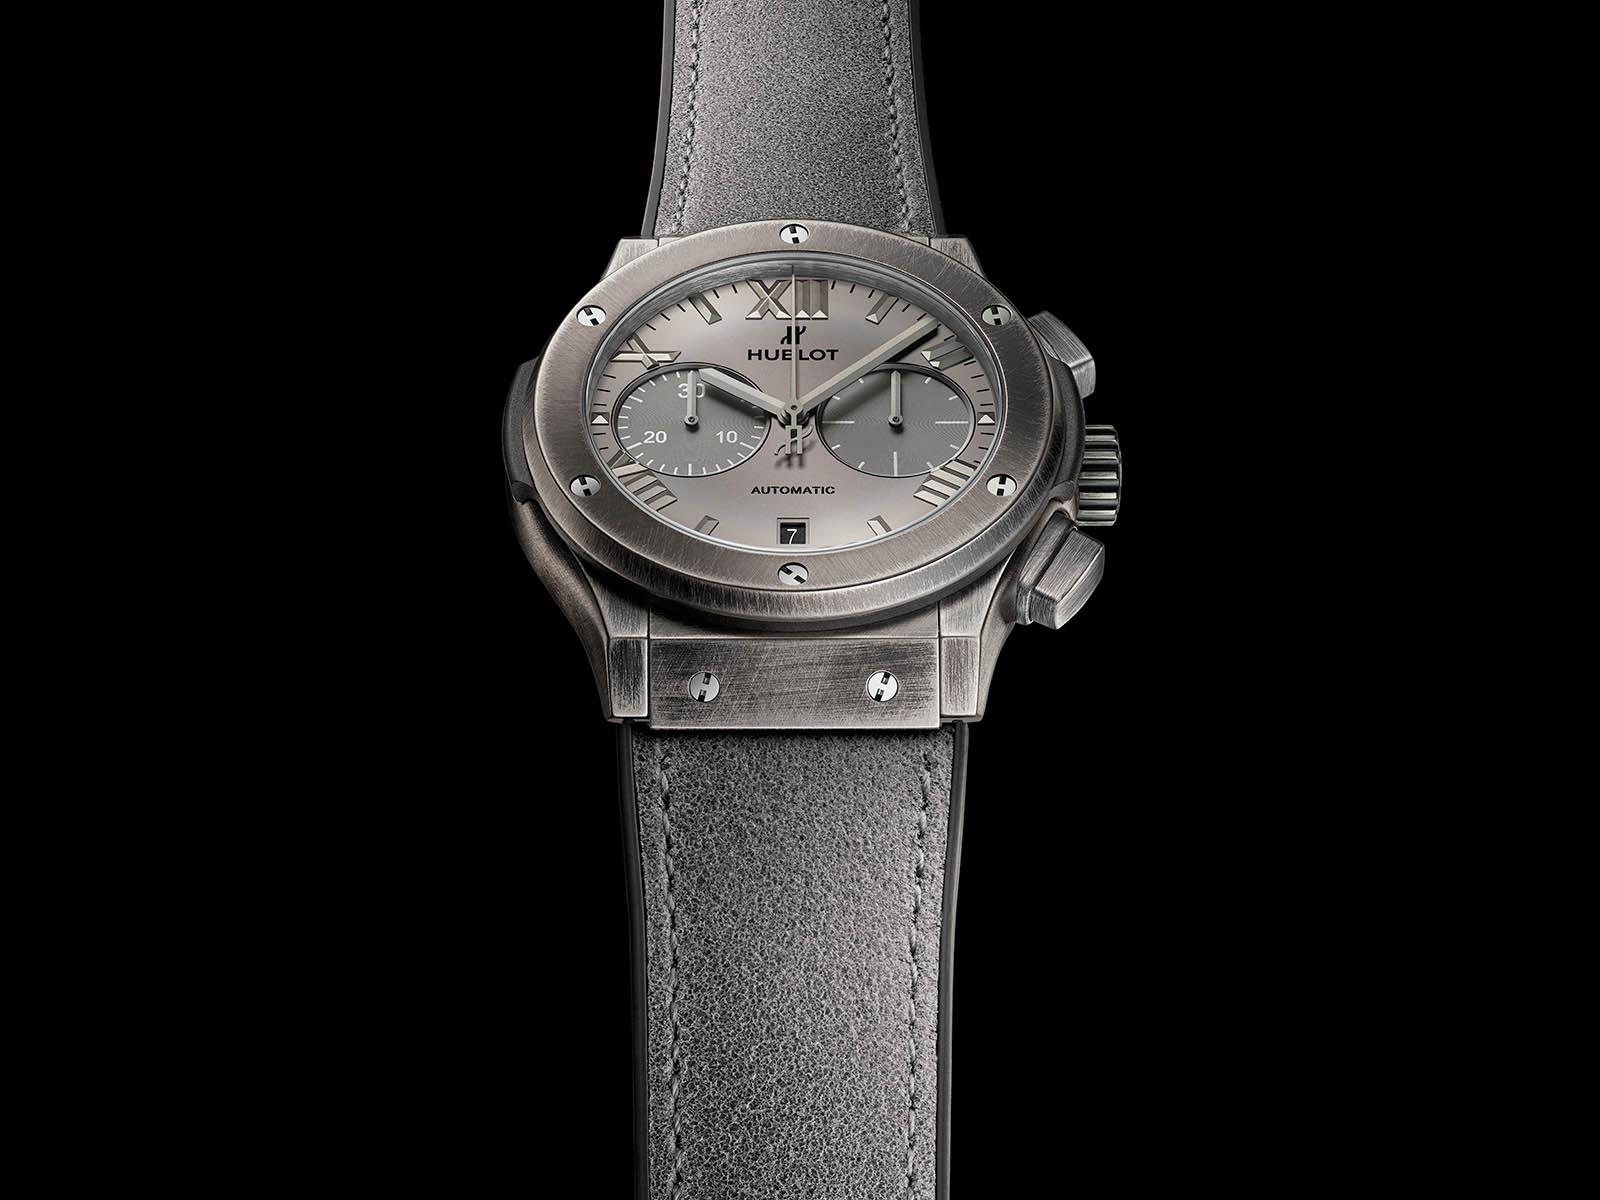 521-nx-4610-vr-rom20-hublot-classic-fusion-chronograph-special-edition-boutique-roma-7.jpg